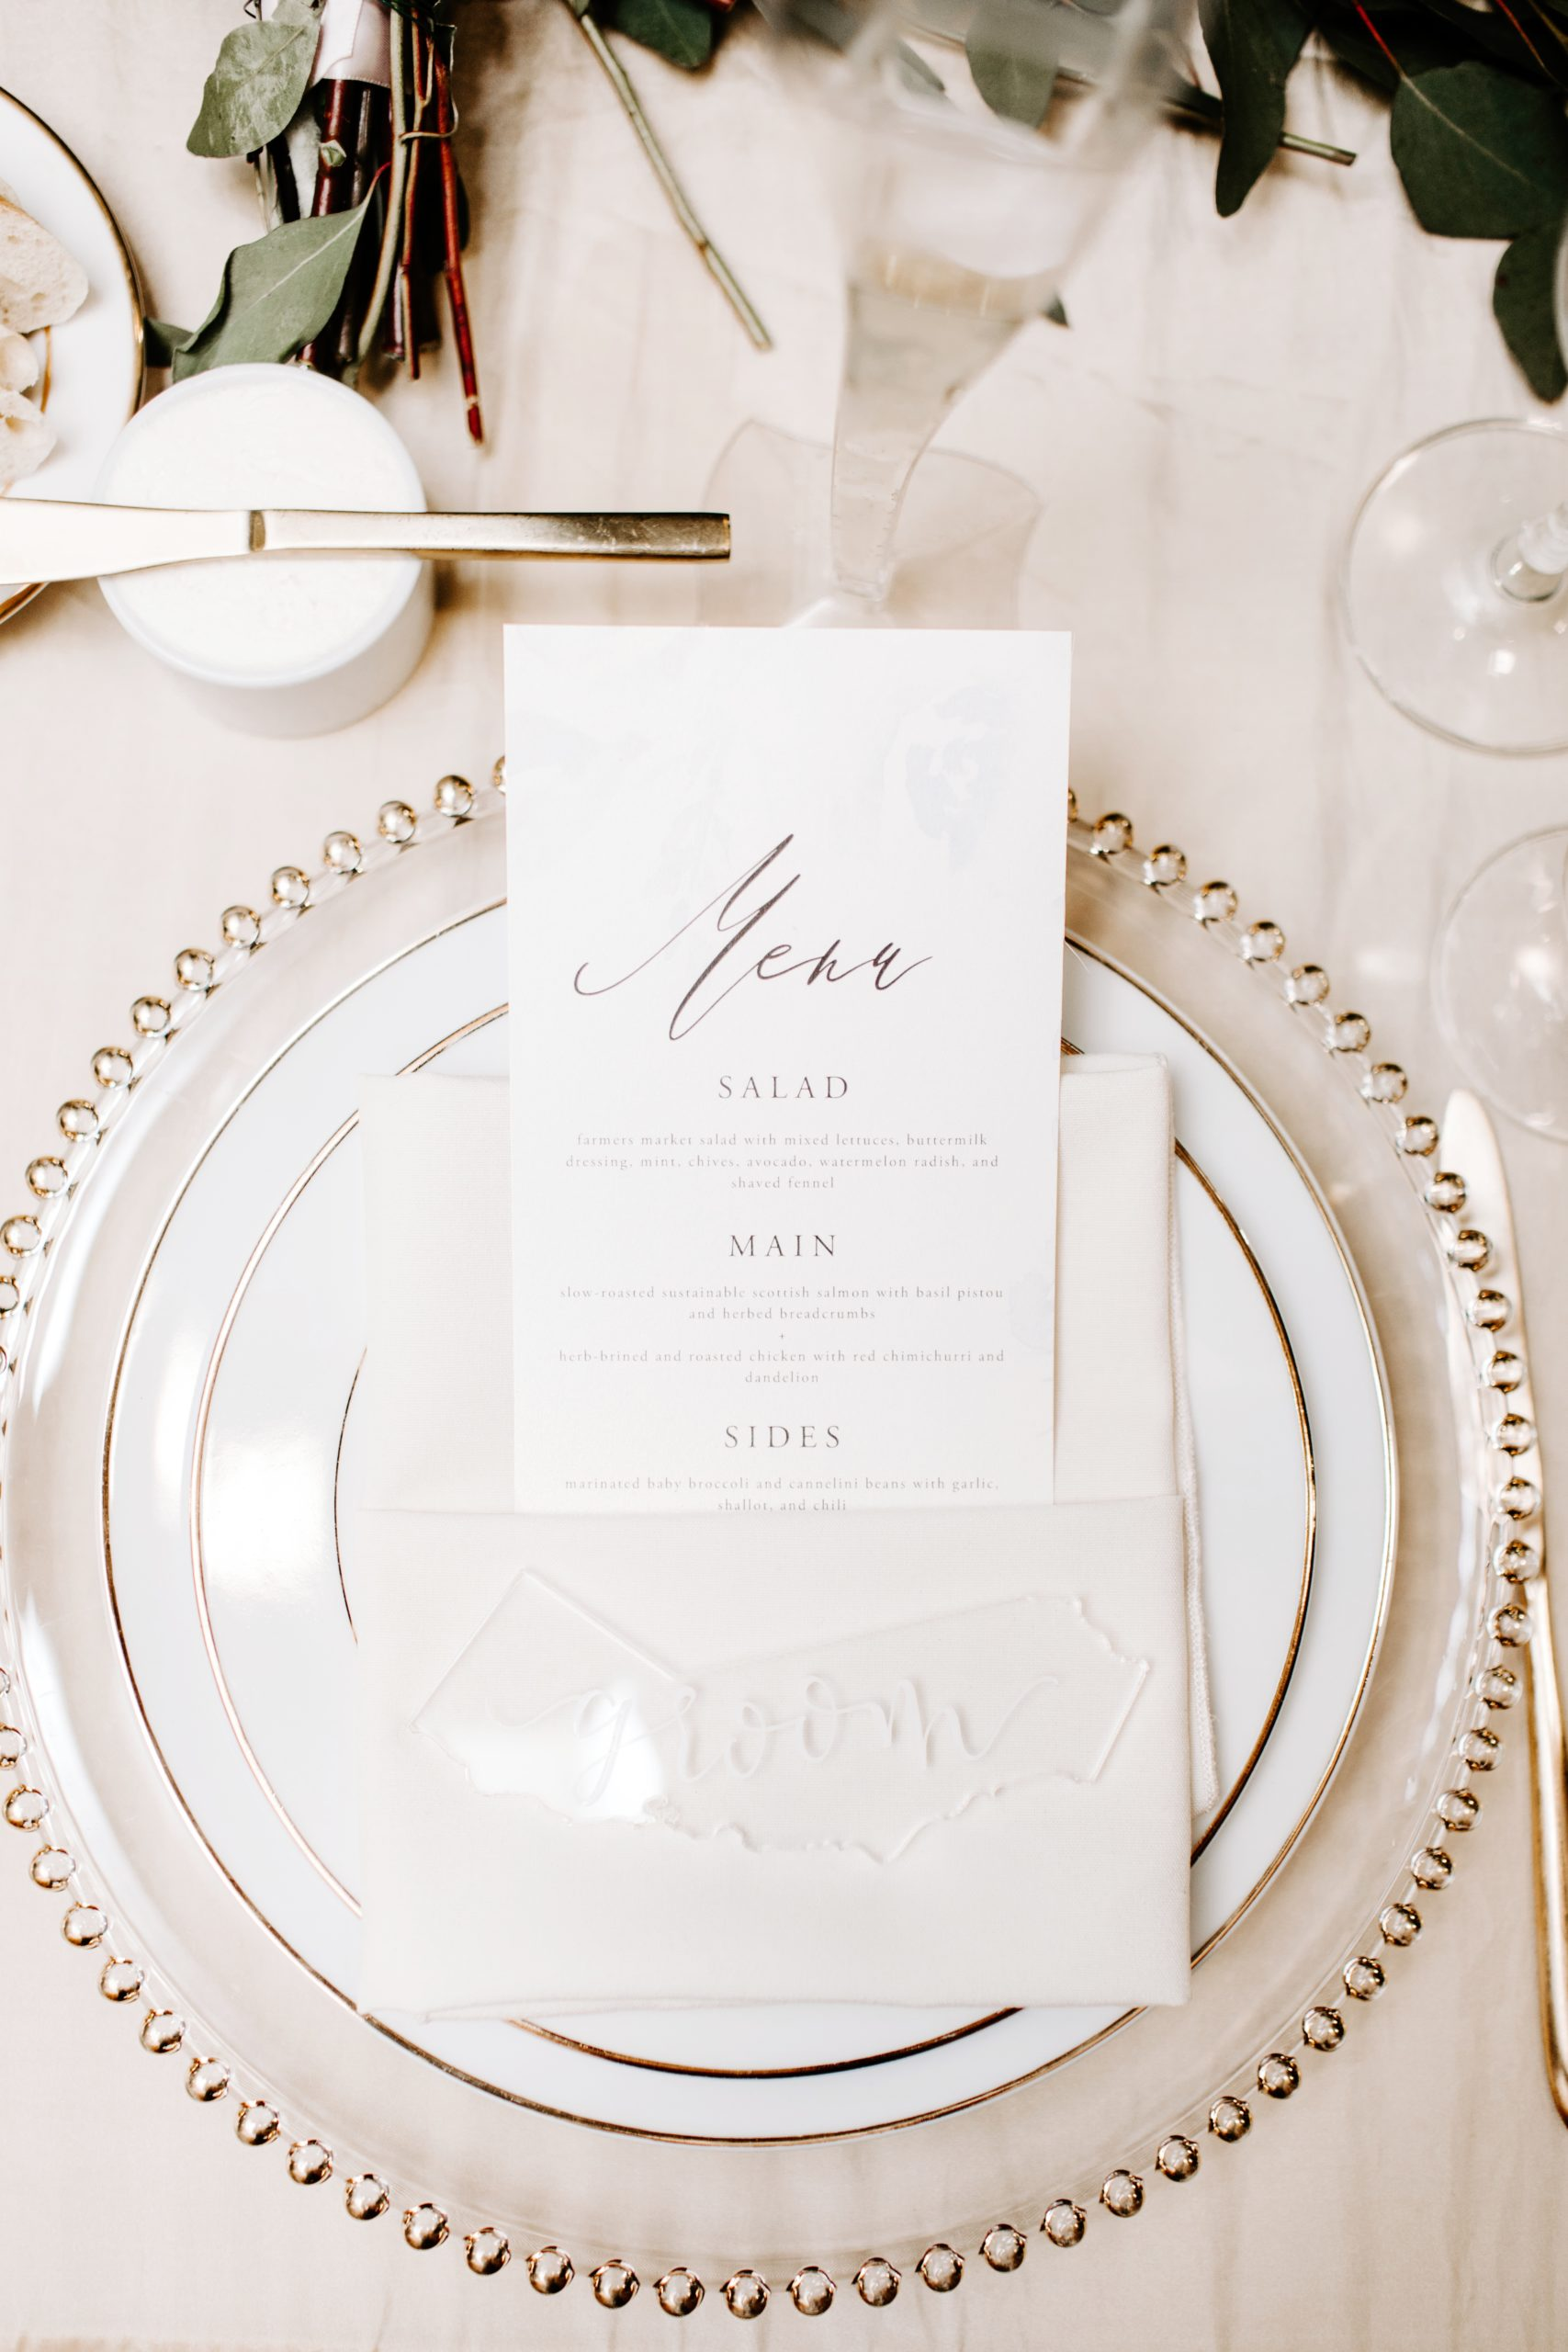 Personalized Acrylic Placecards